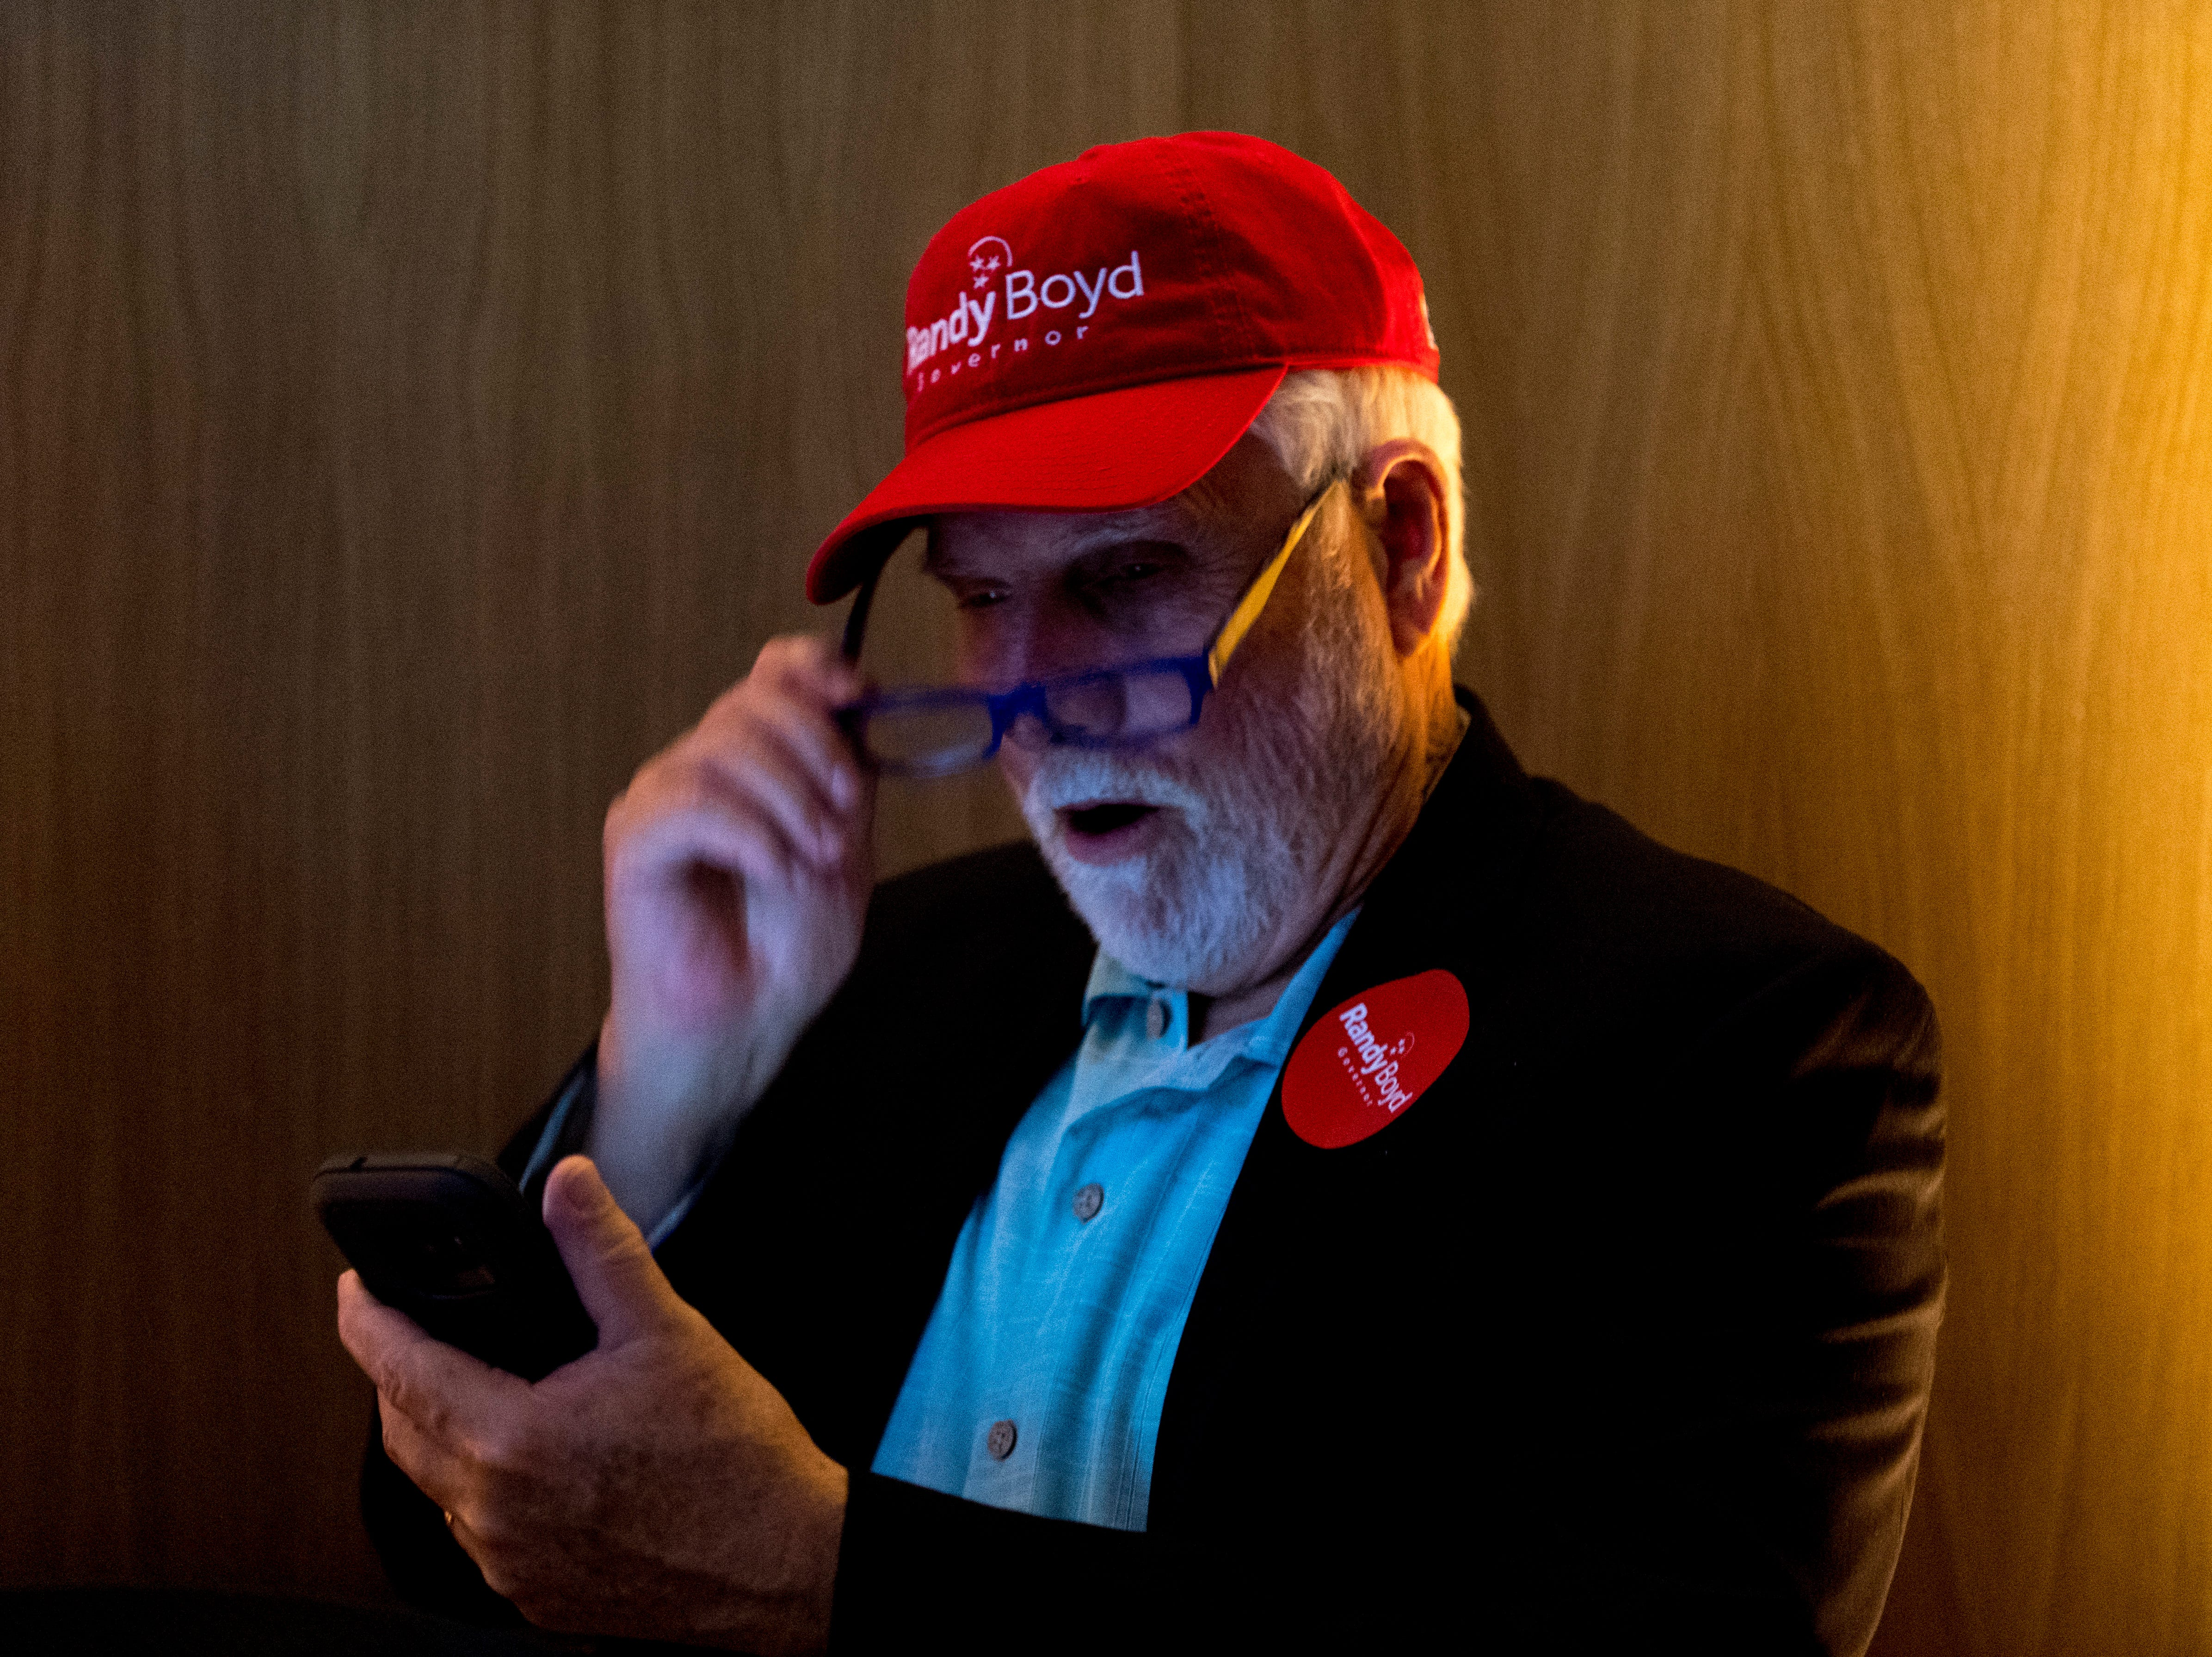 Danny Hansard, of Knoxville, looks at the poll numbers on his phone at the Randy Boyd for Governor watch party at Jackson Terminal in Knoxville, Tennessee on Thursday, August 2, 2018.